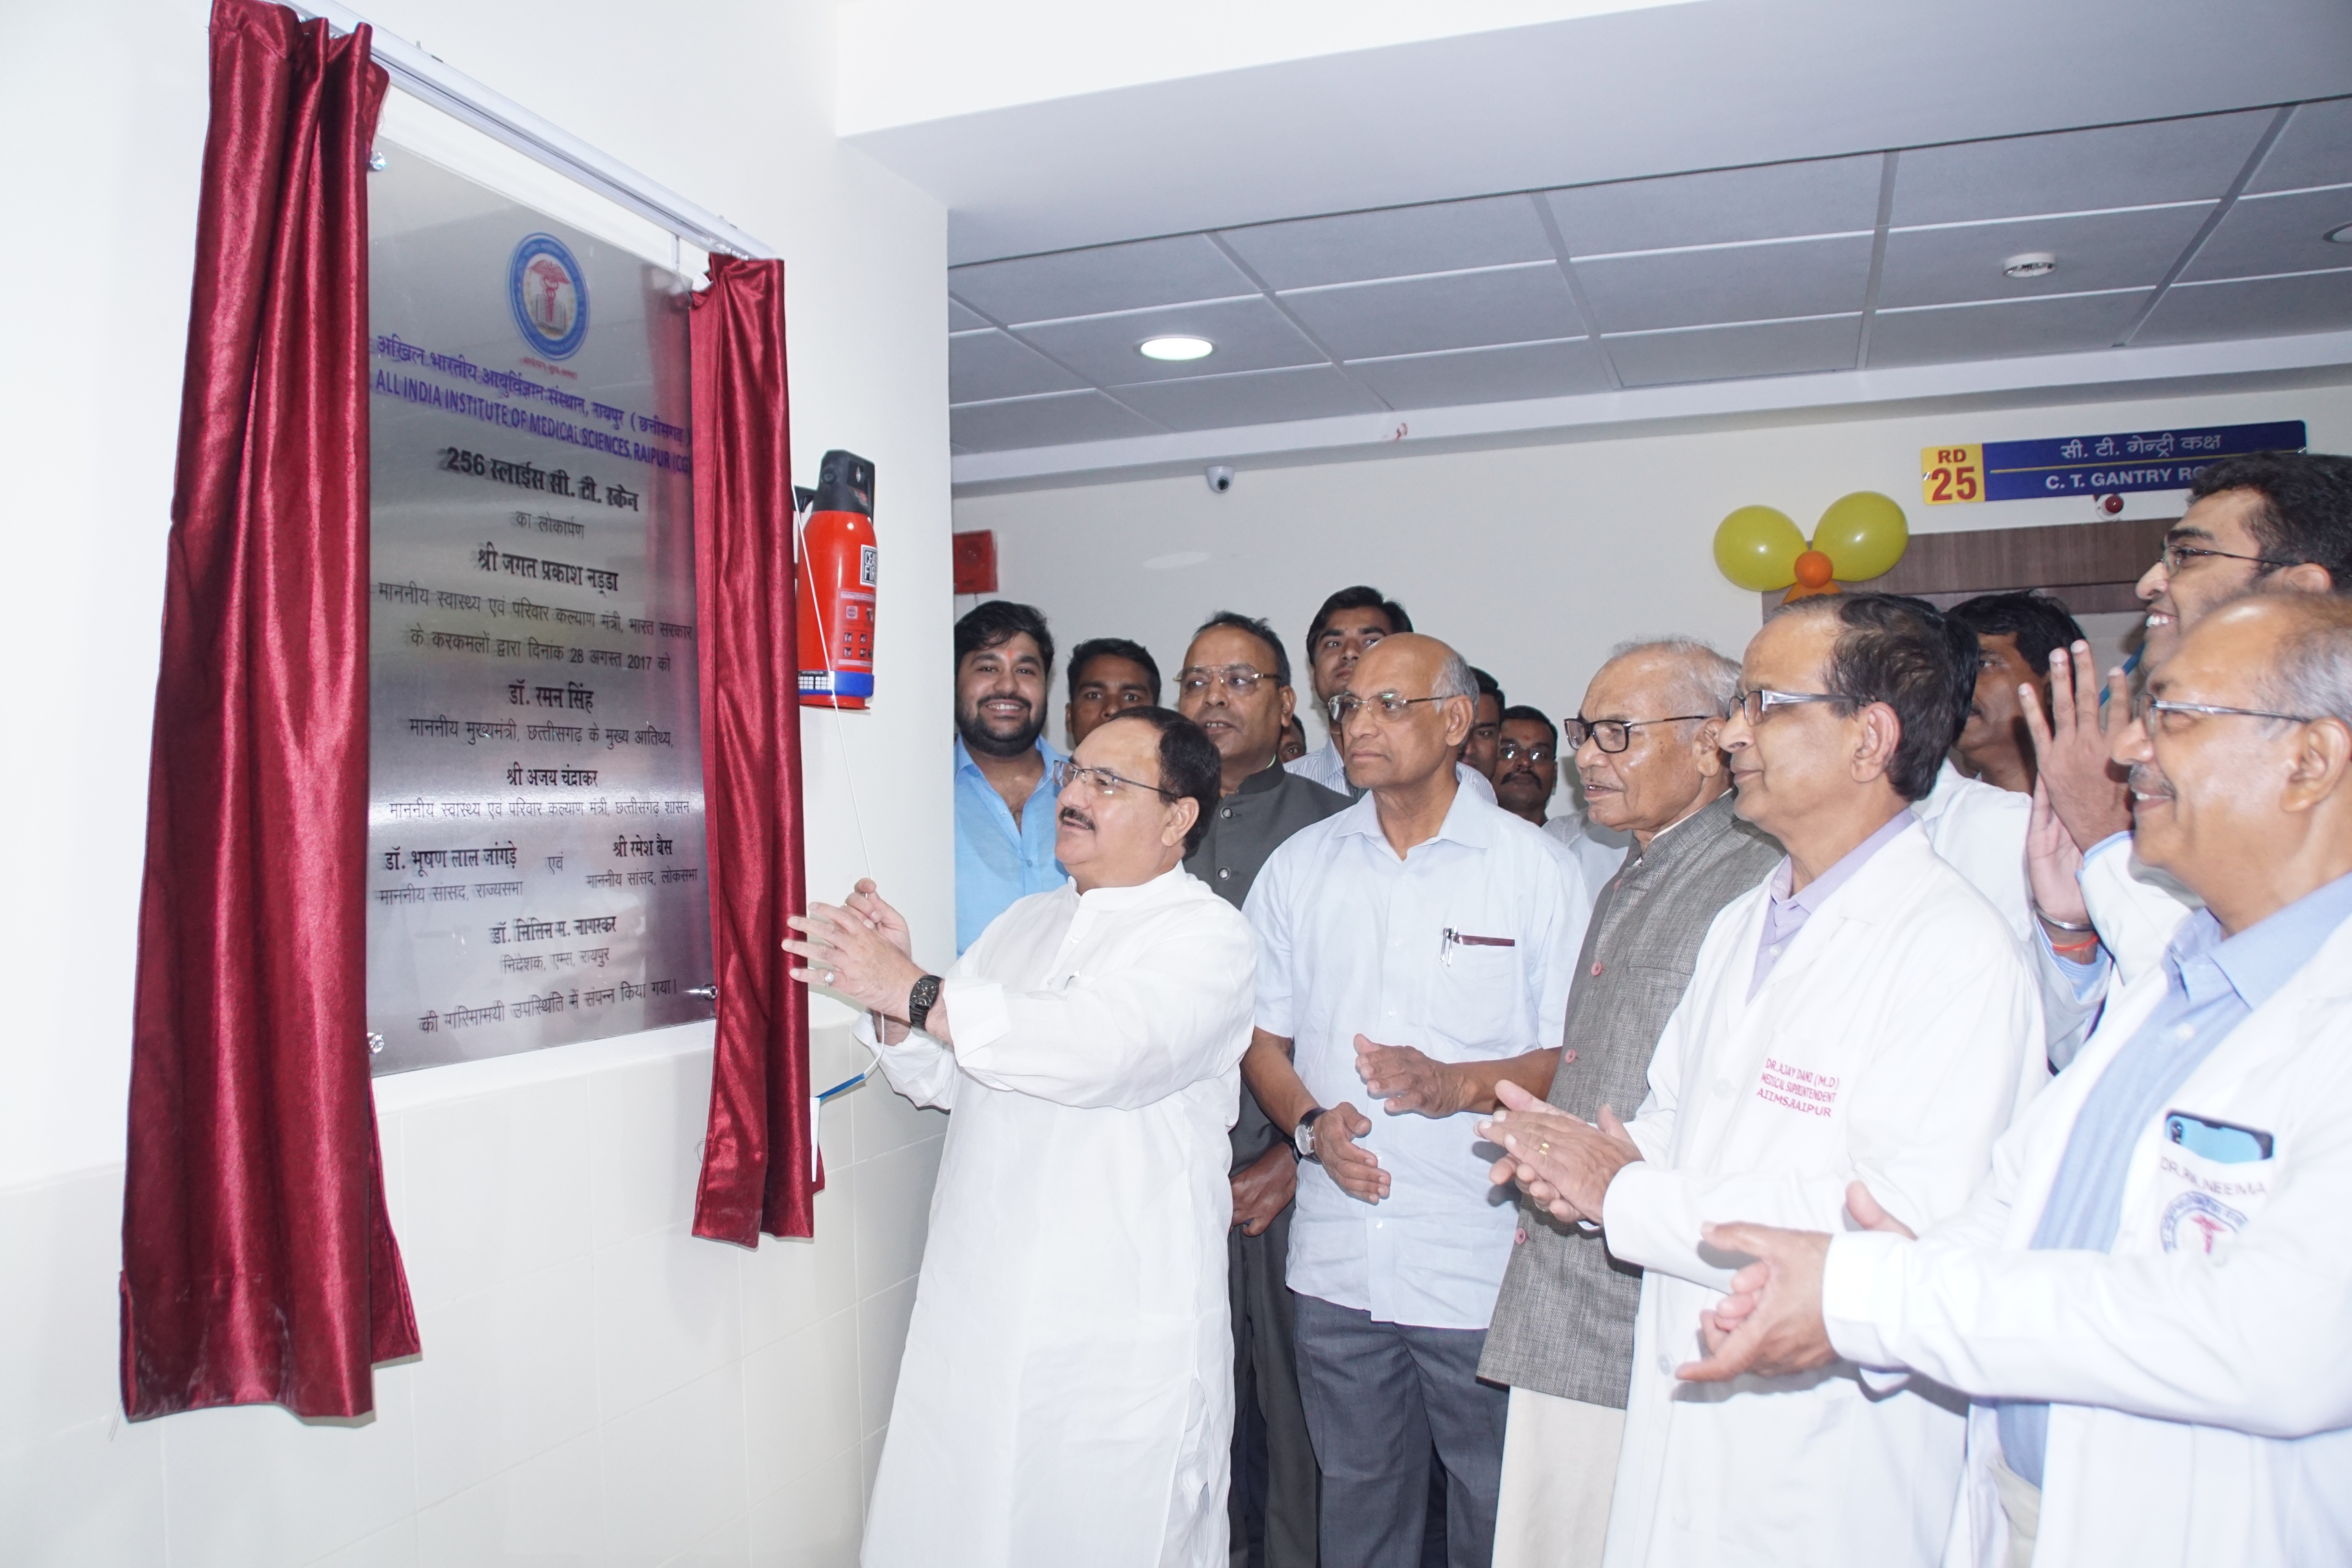 Central Health Minister, inaugurated various facilities in AIIMS Raipur.